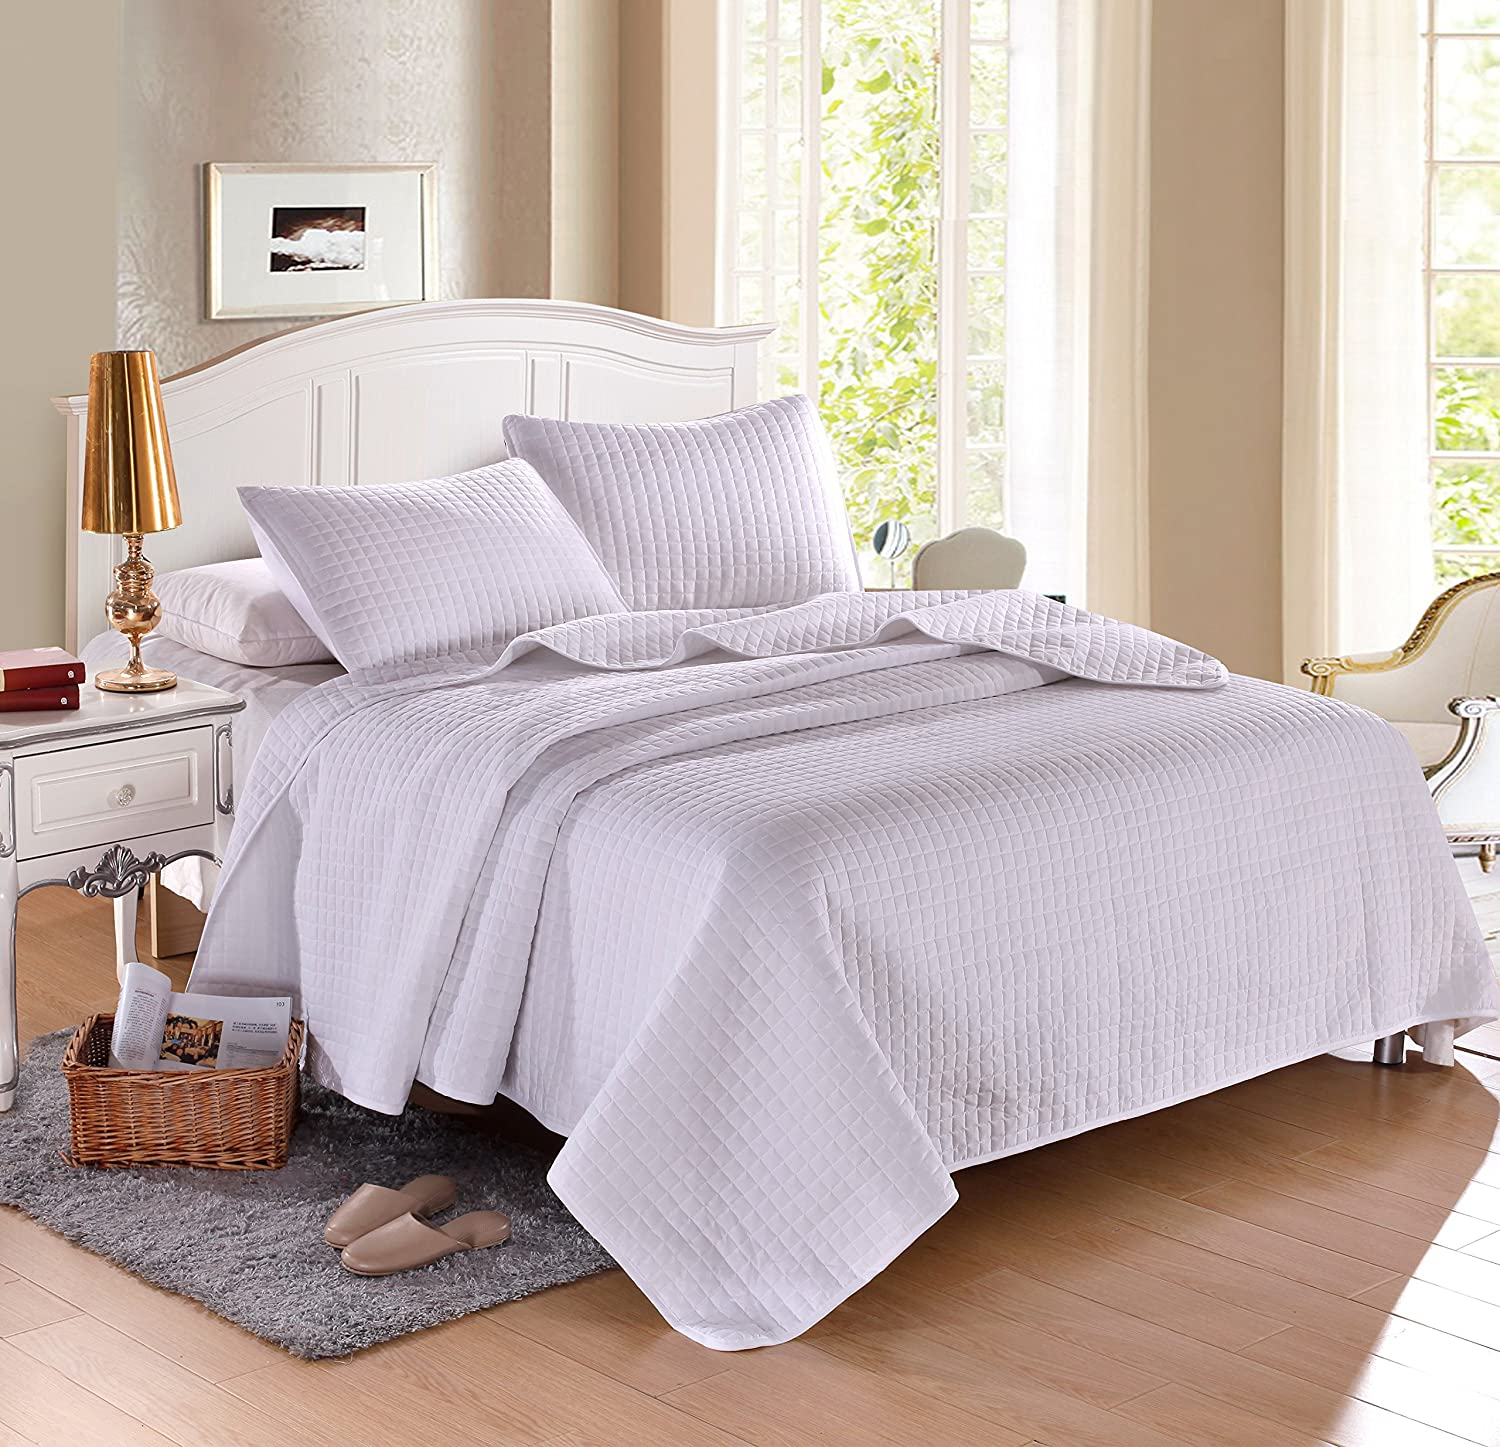 (Full (86x86), White) FULL WHITE Solid colour Quilted Bedspread Coverlet (86